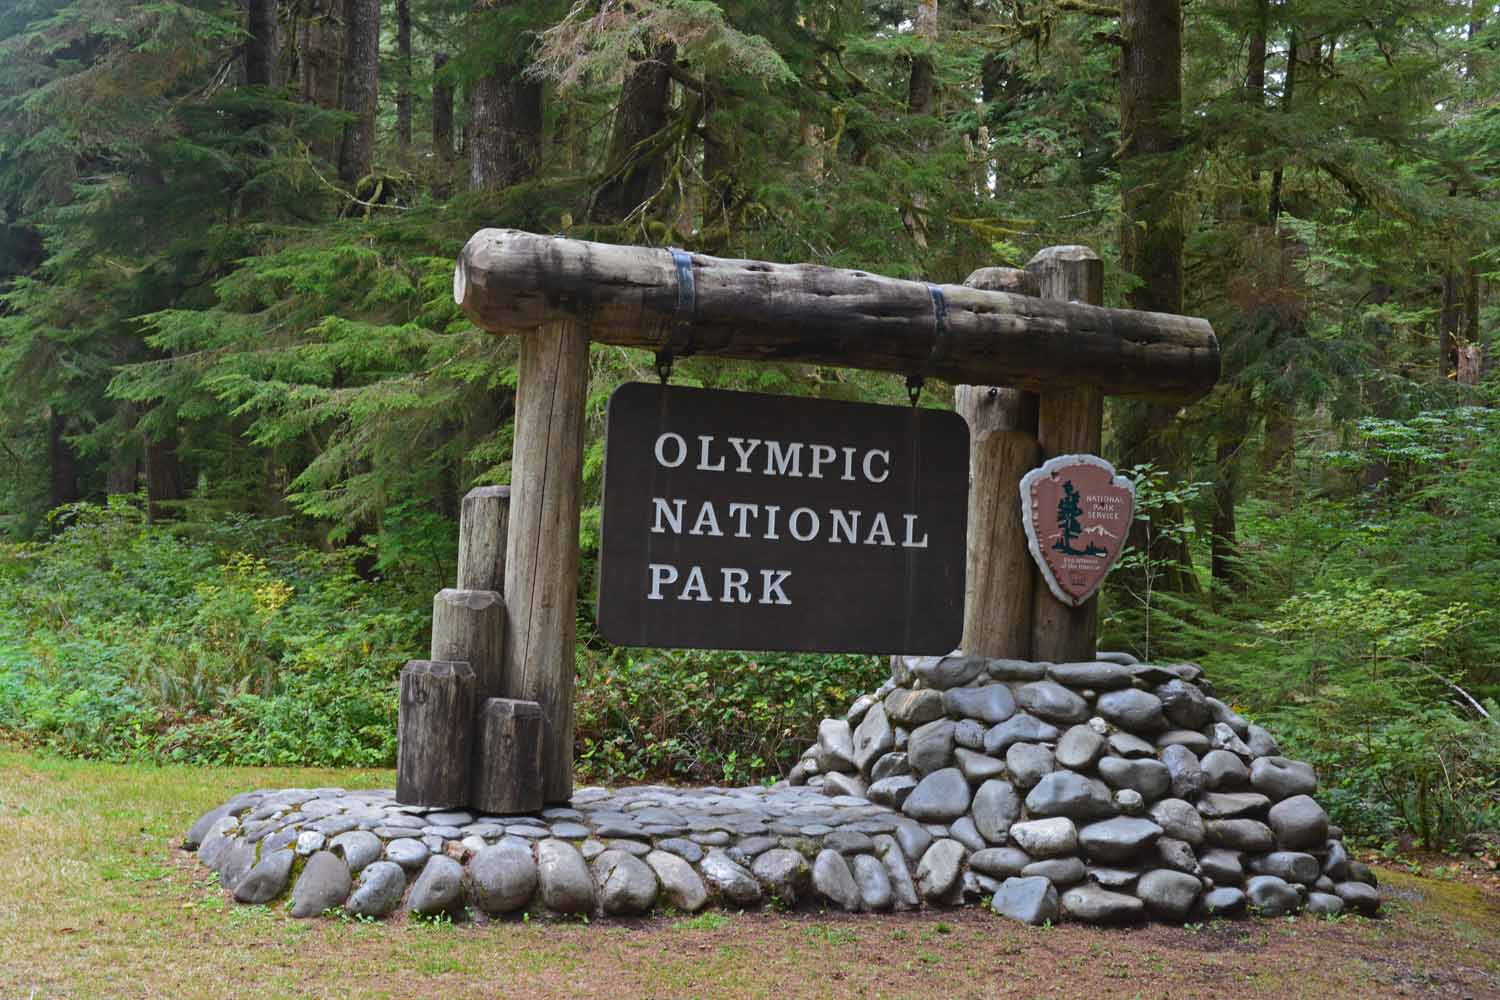 Next up was Olympic National Park.  When we visited Washington a decade ago we spent a day checking out the park.  Looked forward spending more time here.